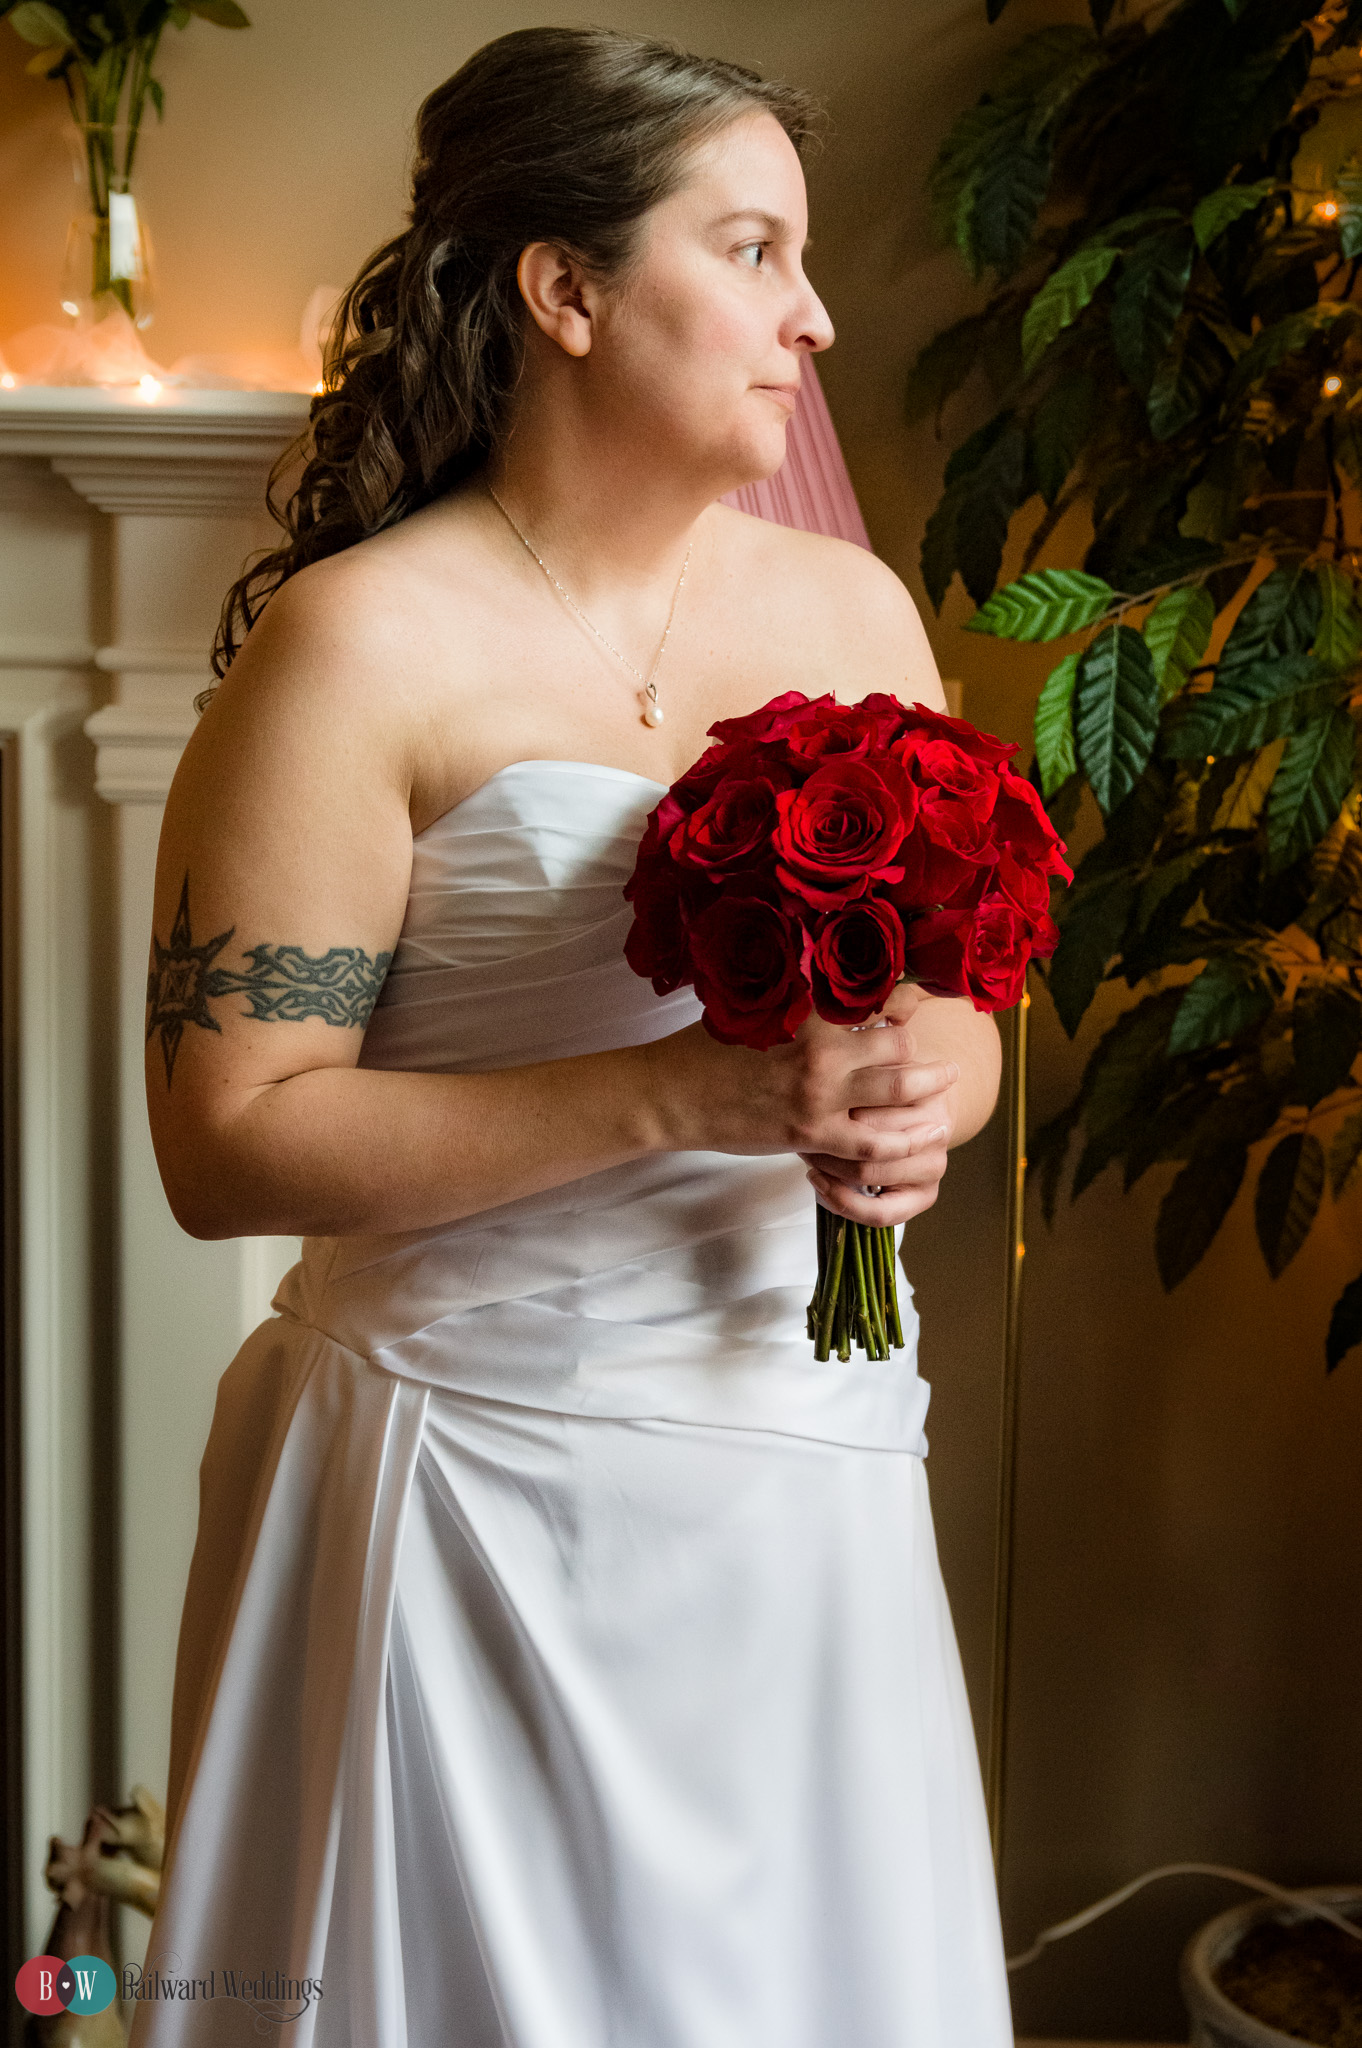 Bride in ceremony with red flowers